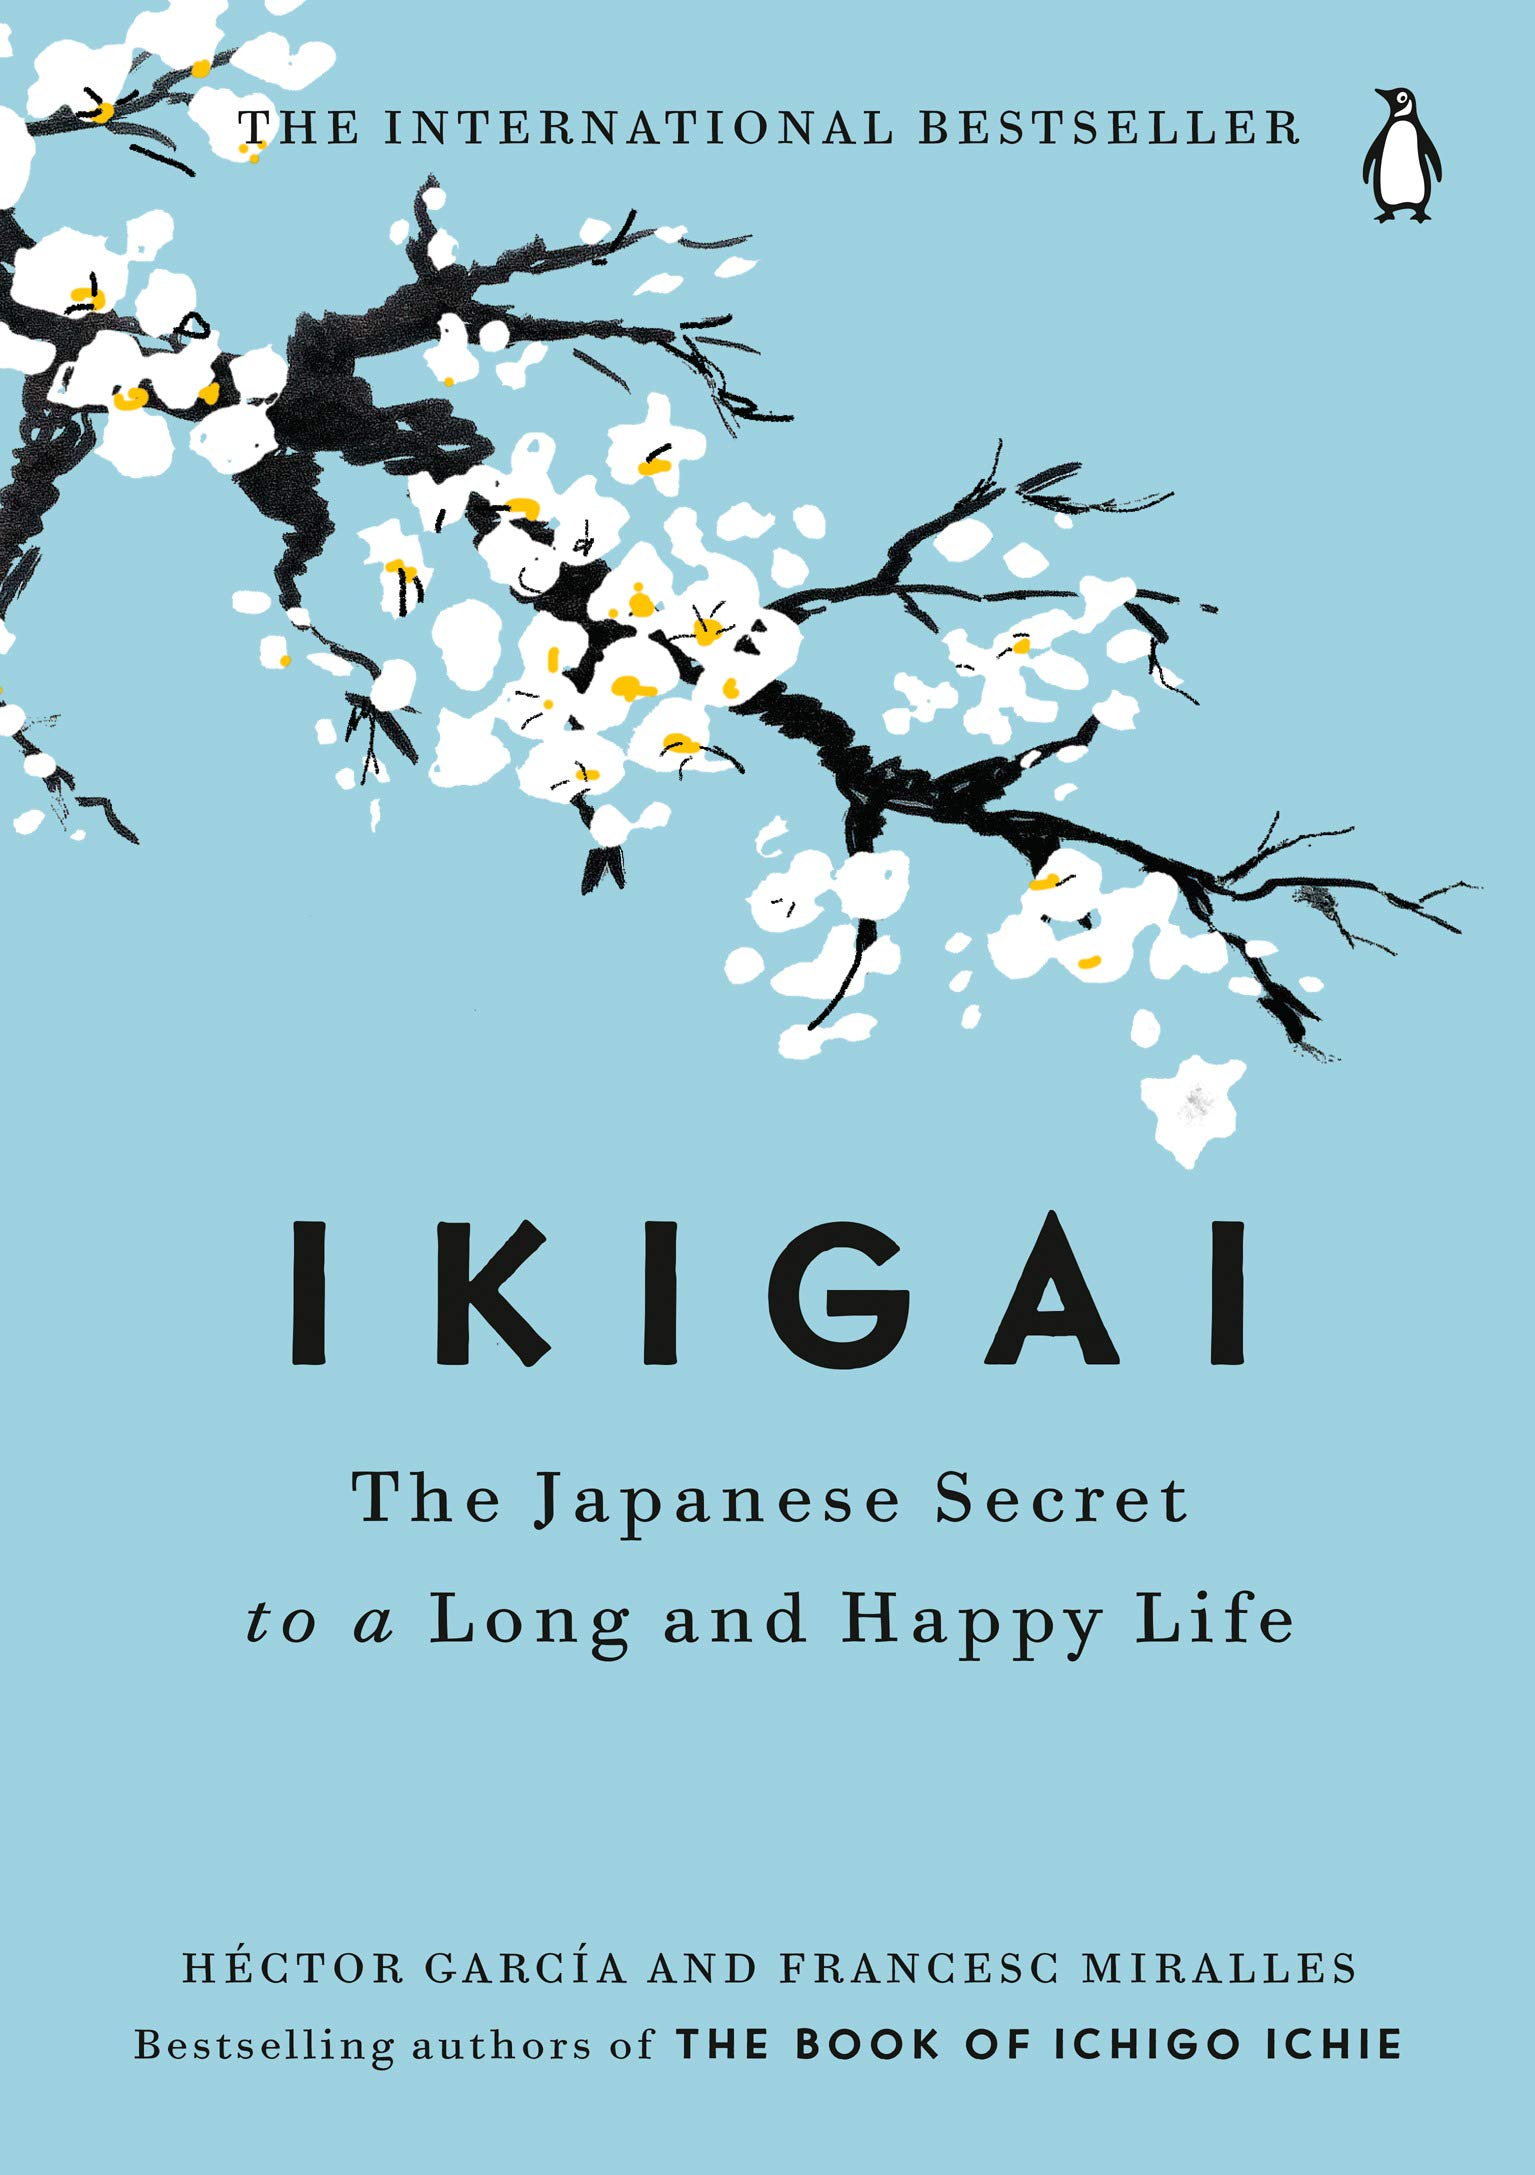 Amazon.com: Ikigai: The Japanese Secret to a Long and Happy Life  (9780143130727): García, Héctor, Miralles, Francesc: Books